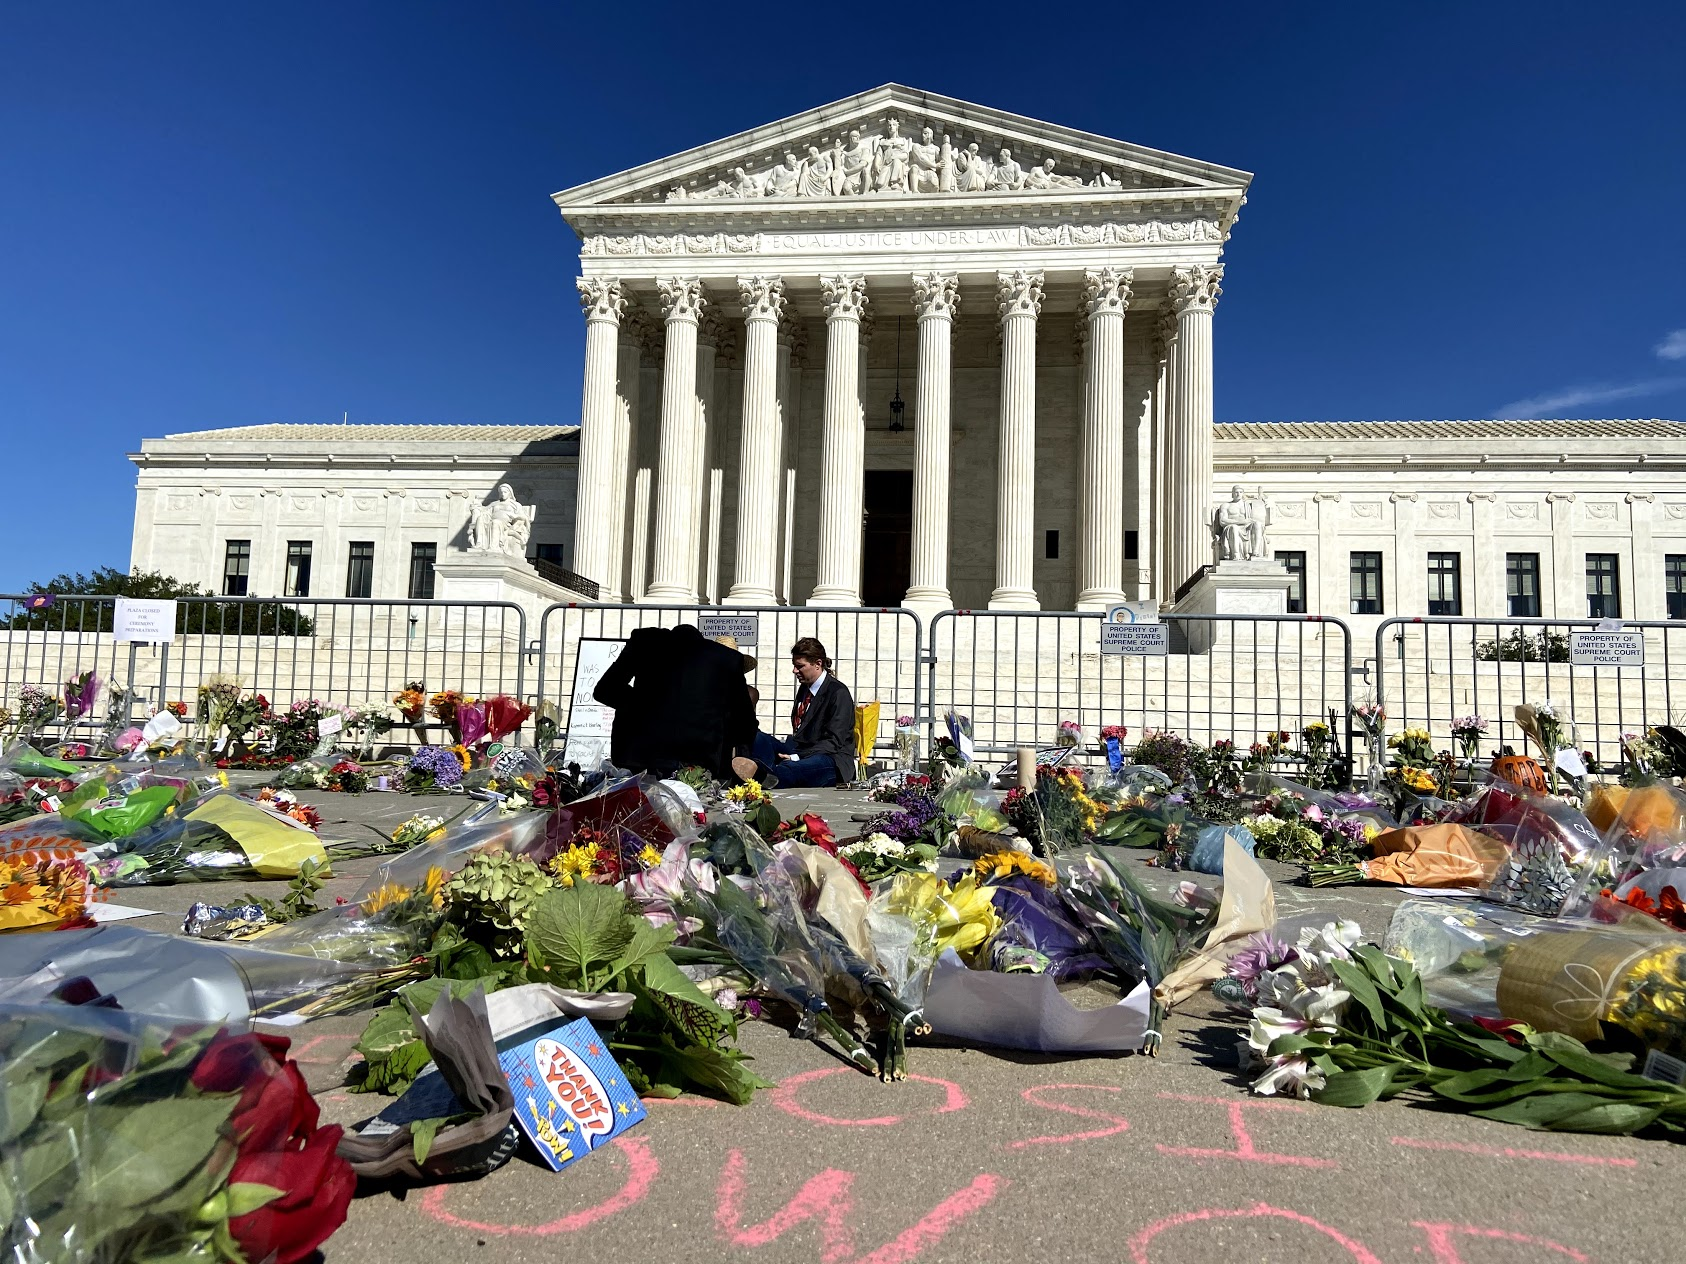 A Small Giant for Justice: Americans Gather To Honor Justice Ruth Bader Ginsburg